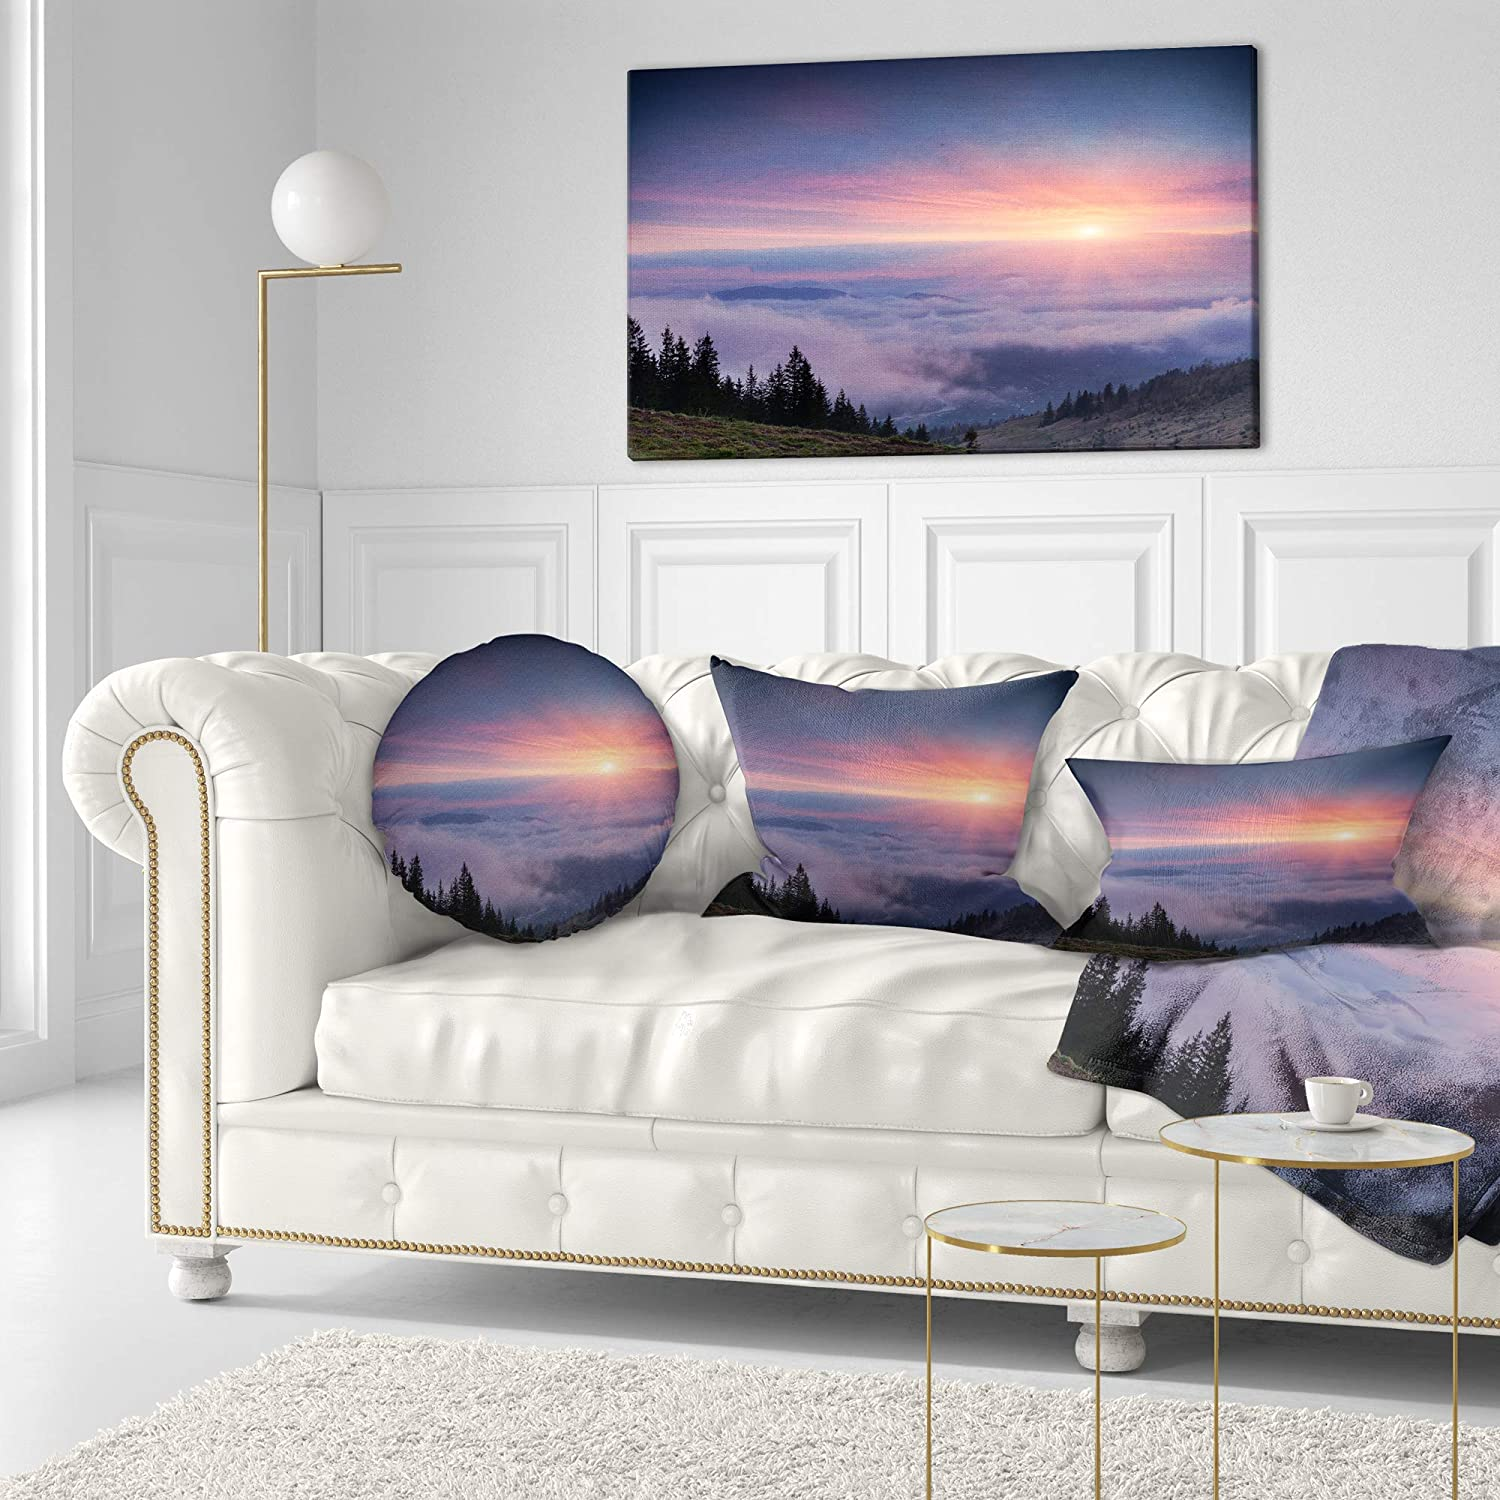 Sofa Throw Pillow 12 in x 20 in in Designart CU9620-12-20 Sunrise in Purple Sky Over Mountains Landscape Photography Lumbar Cushion Cover for Living Room Insert Printed On Both Side